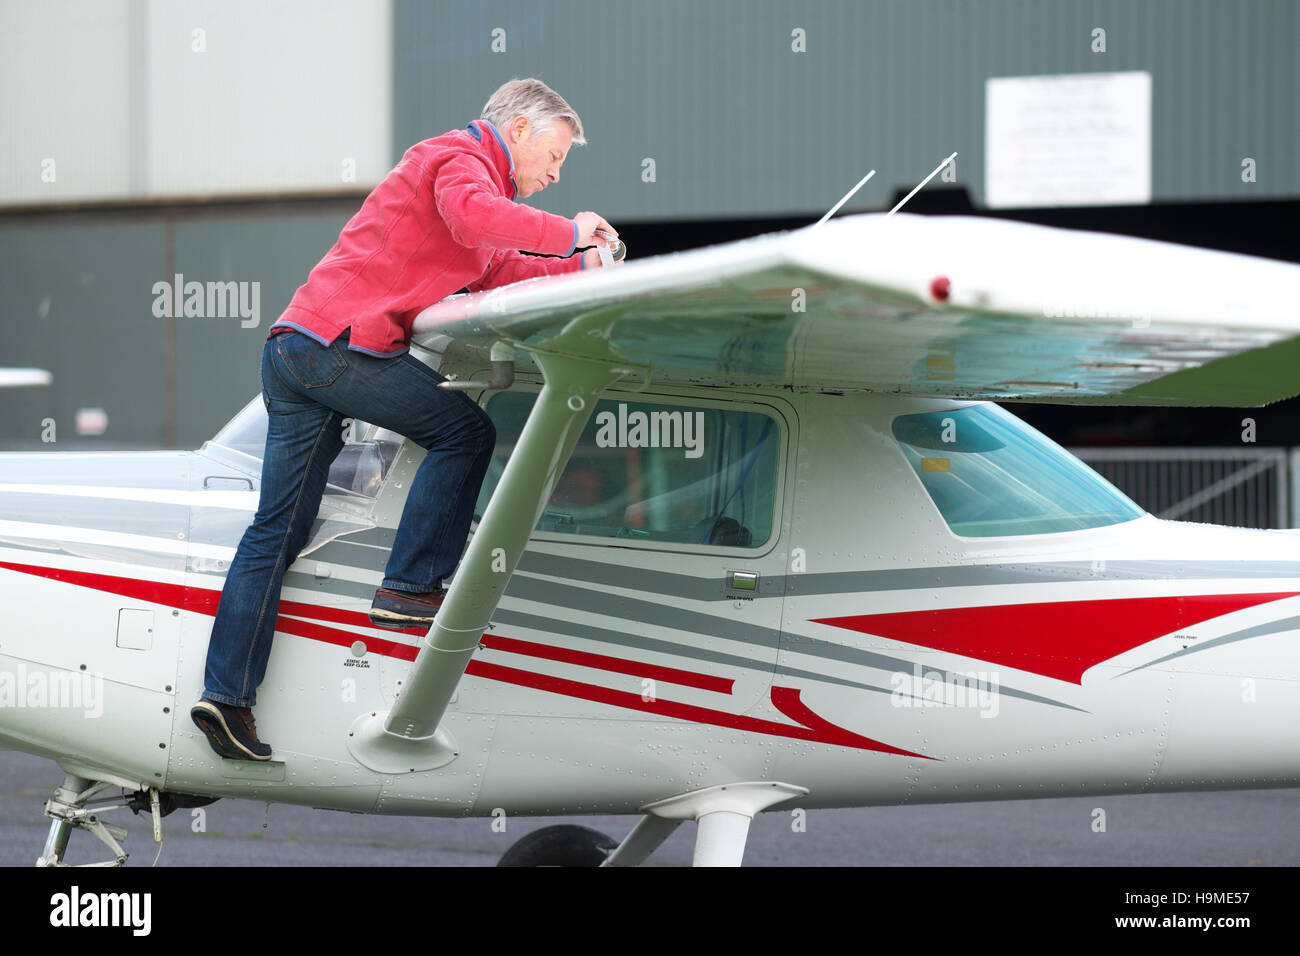 A pilot checks the wing tank fuel levels as part of the preflight checks on a Cessna 152 training aircraft at Shobdon - Stock Image